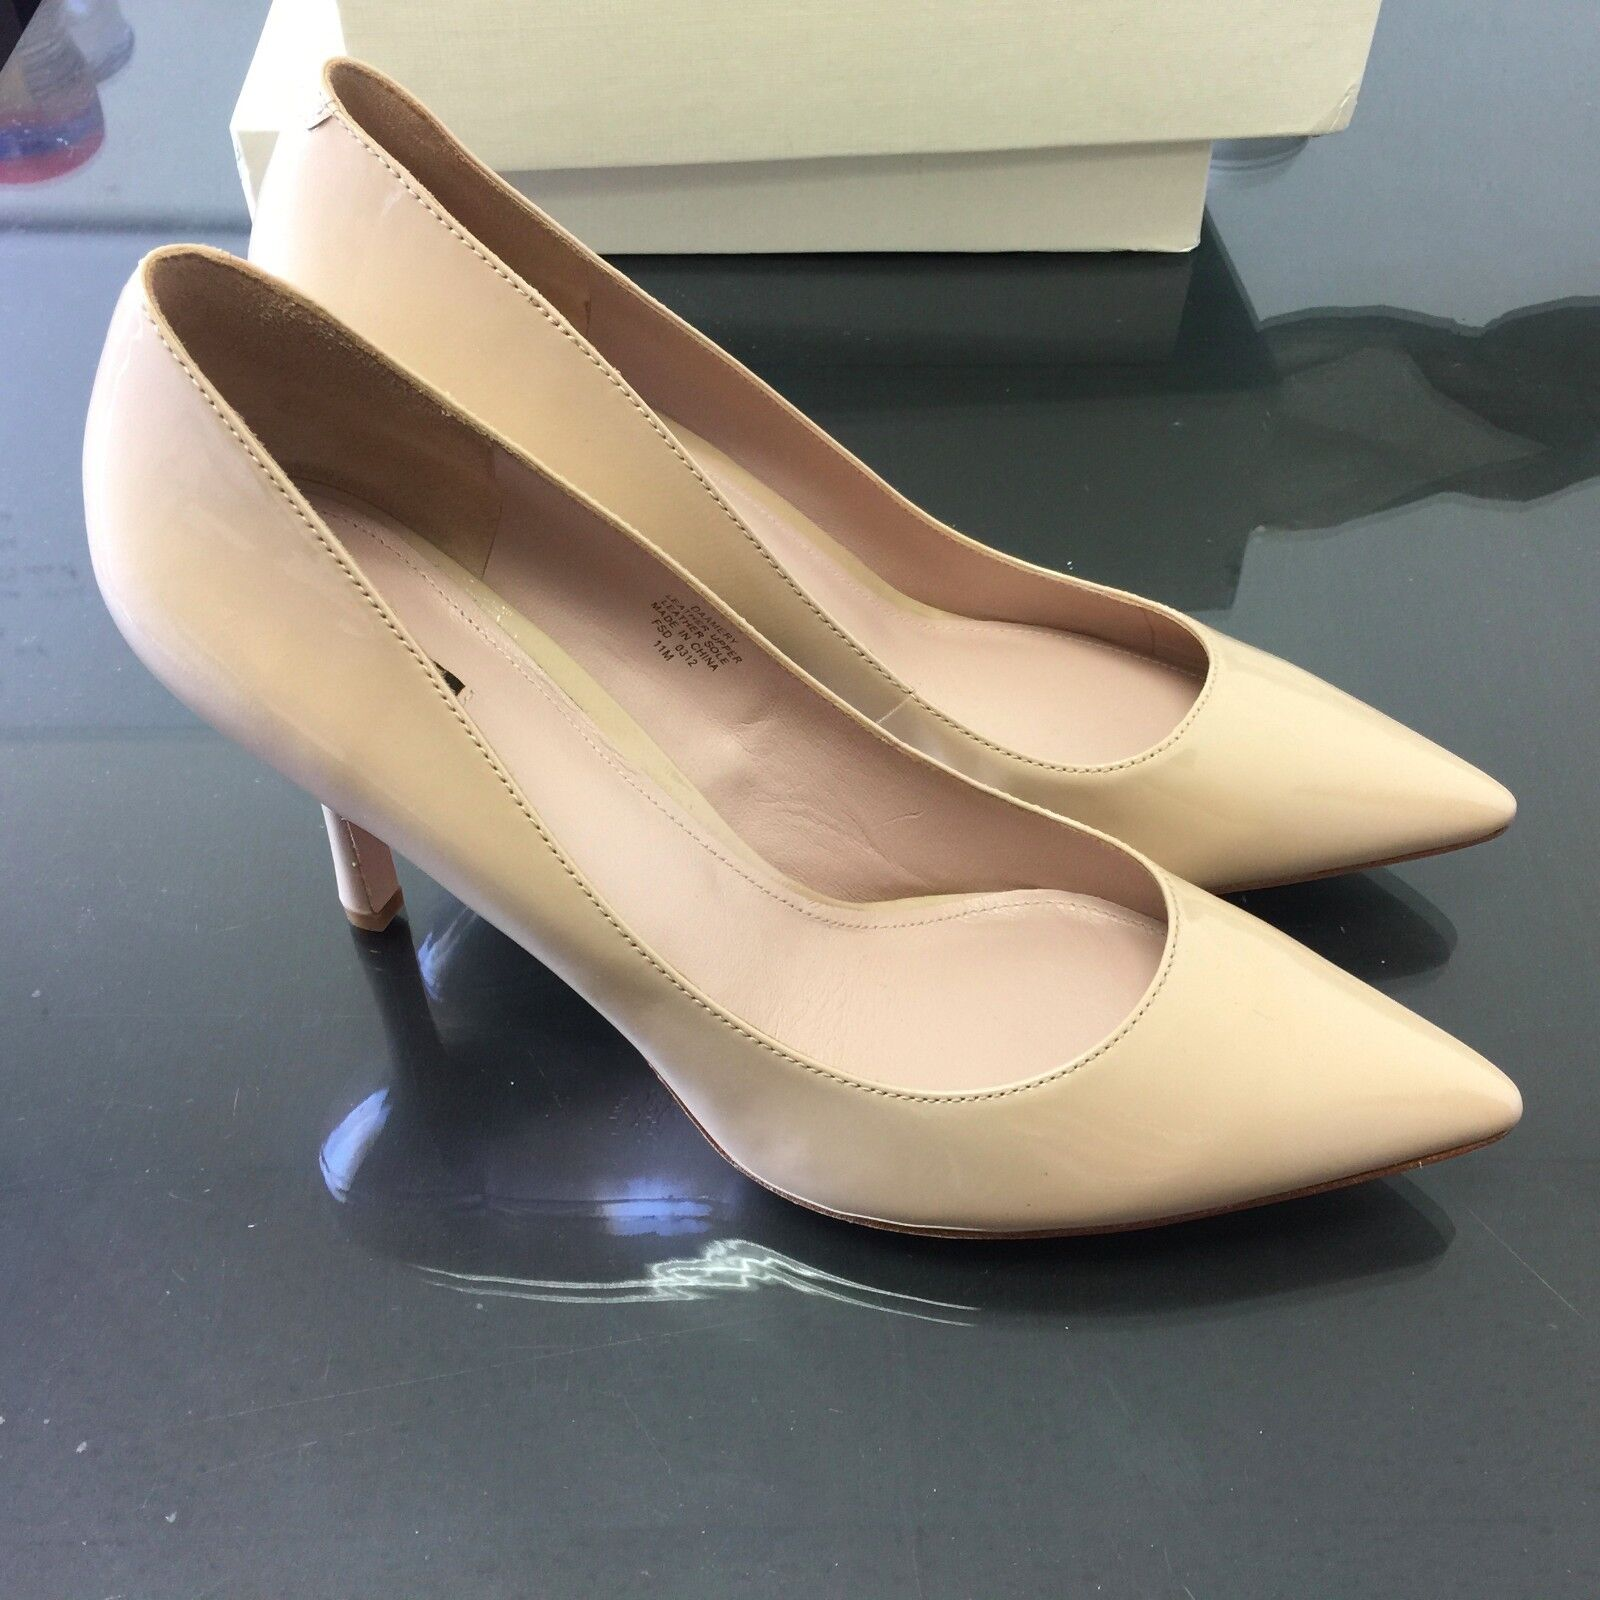 New In Box  Joan & David Amery Women's Women's Women's Natural Patent Leather Pumps 11M 509aeb